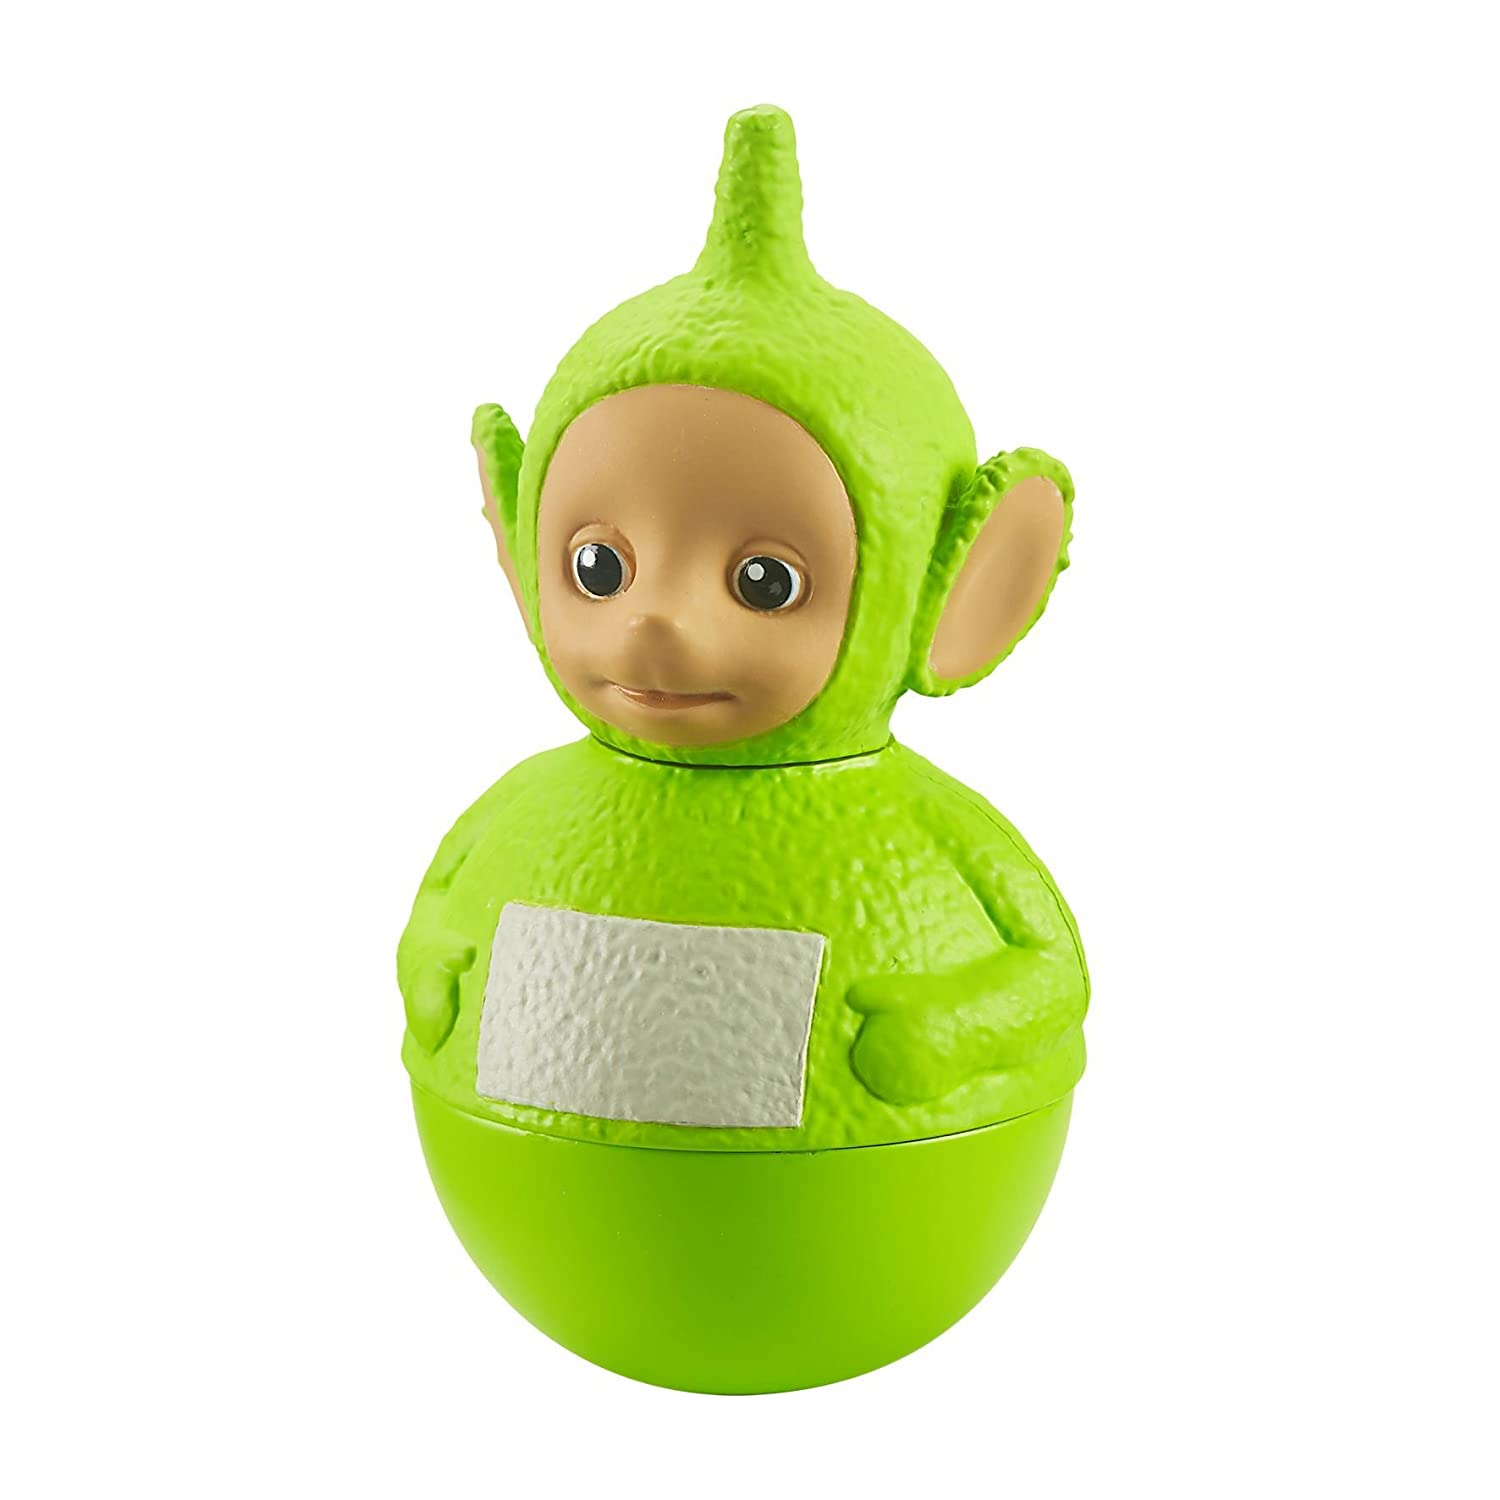 Teletubbies Culbuto Figurine Dipsy character options